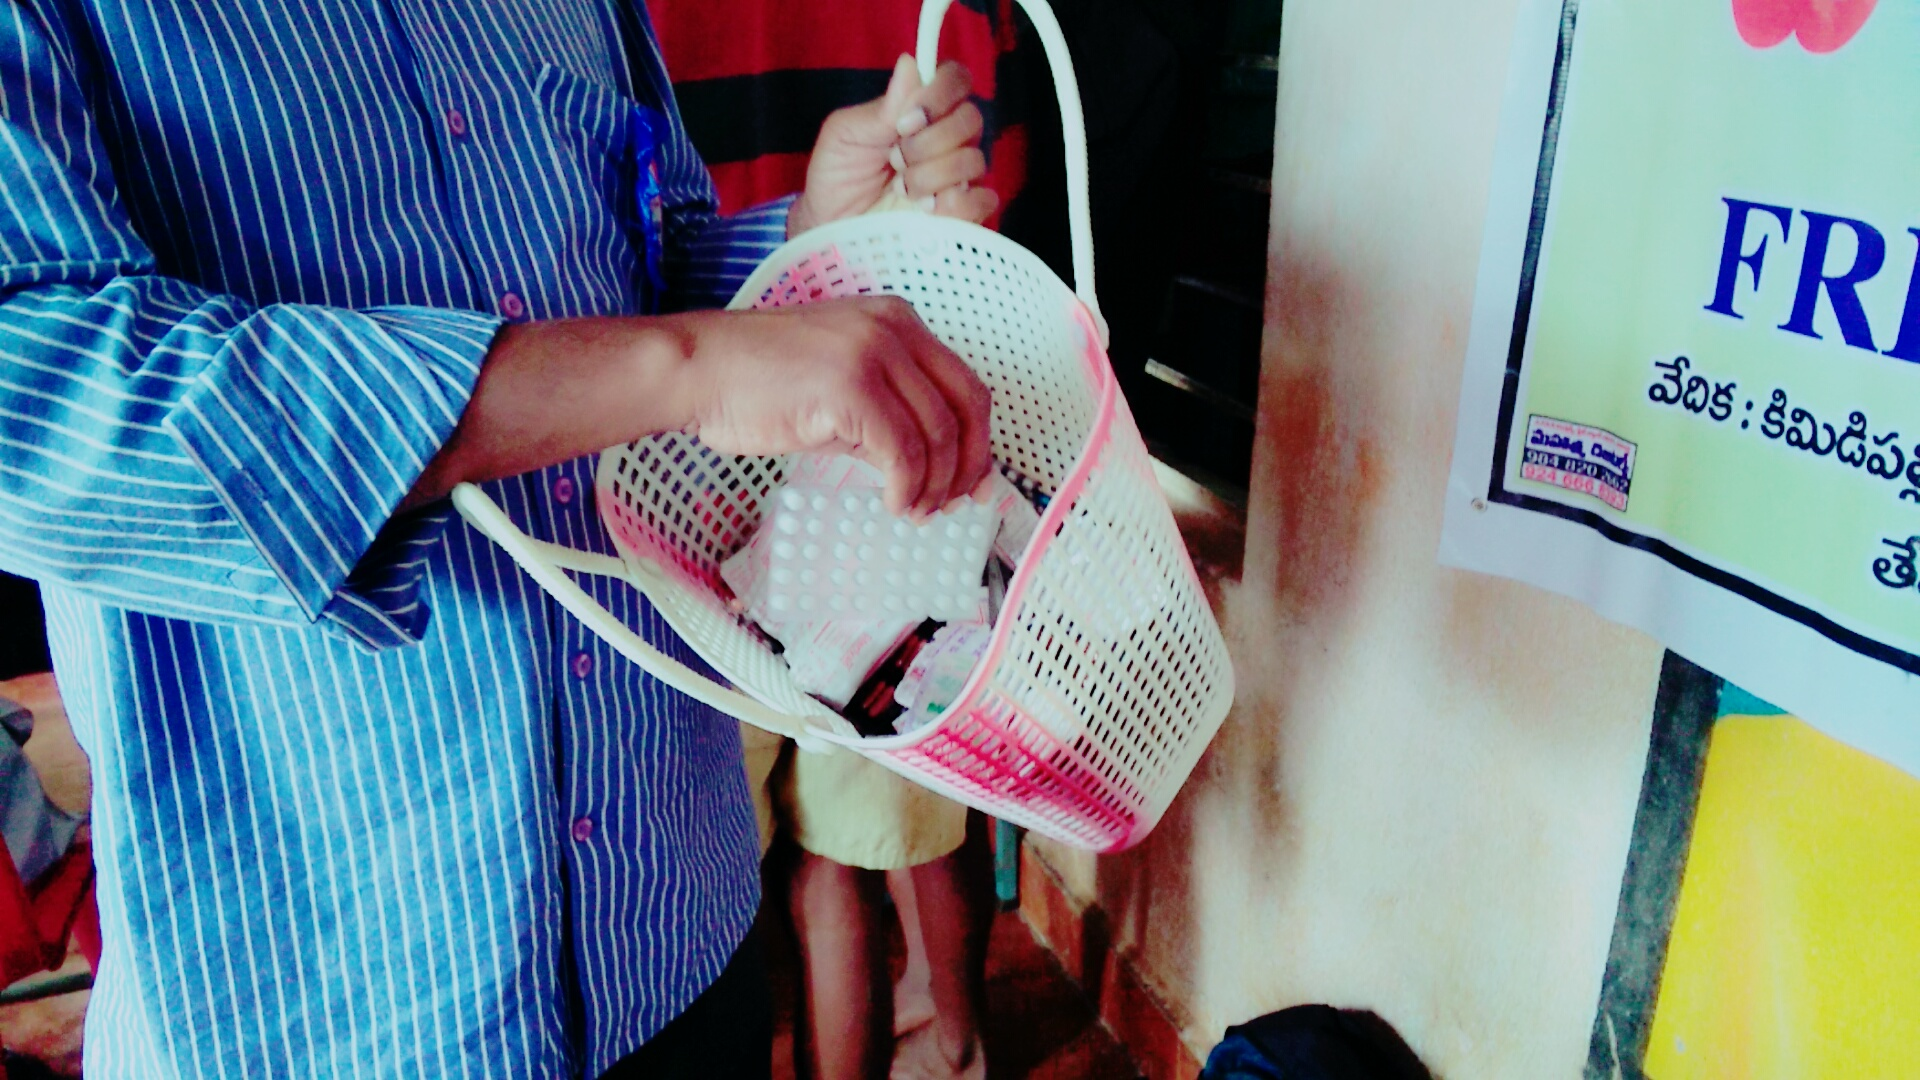 The basket in which the ANM carries the drugs. Credit: Pavan Korada